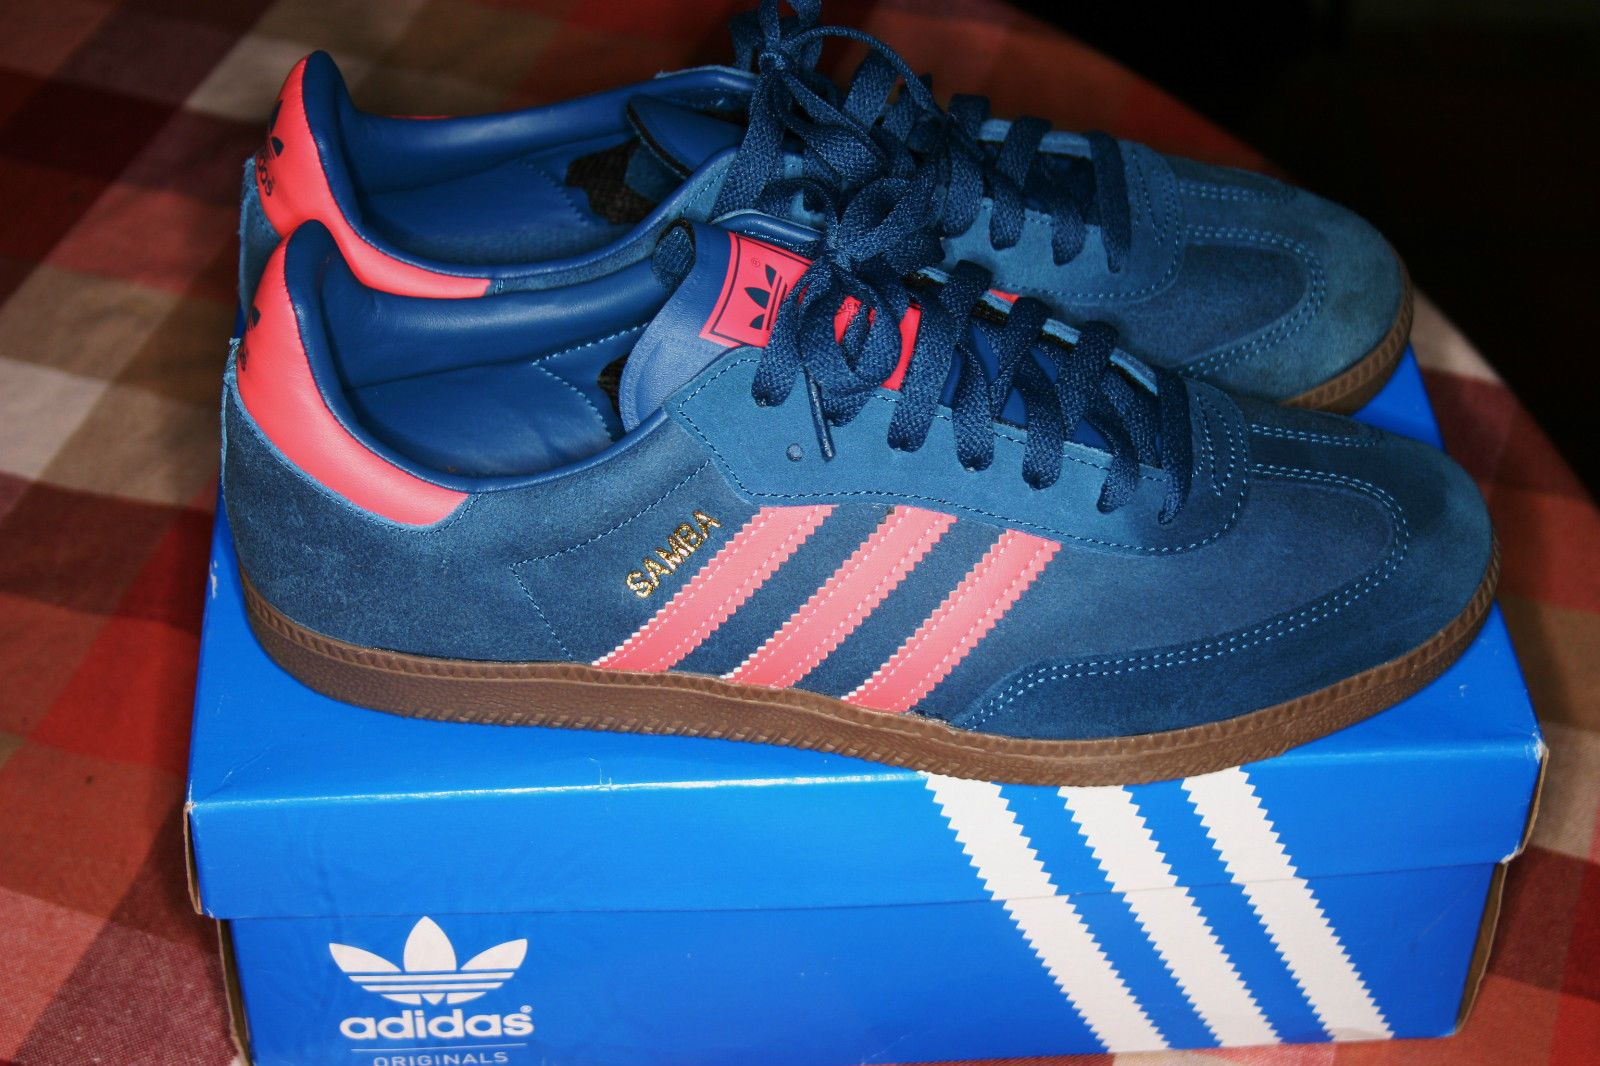 official photos ab133 9fe1e Mens shoes - brand new ltd edition adidas samba trainers in blue   pink  with gum sole size 9   m,adidas runner salmon,adidas shoes  clearance,timeless ...